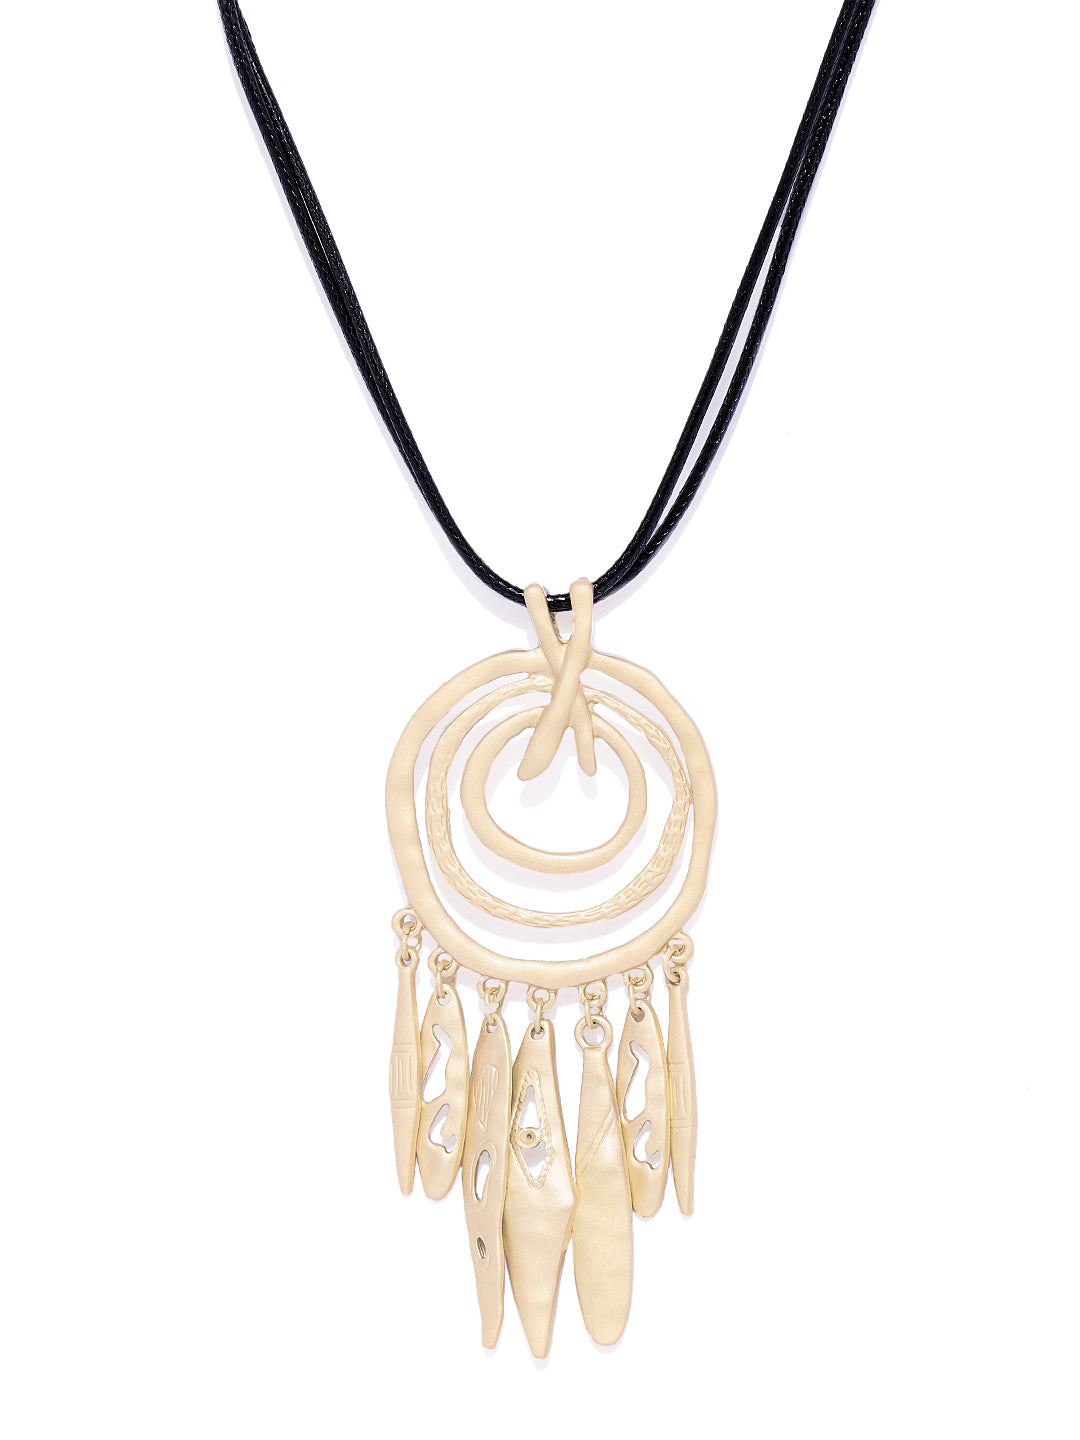 Dreamcatcher Matte Gold Necklace - ChicMela